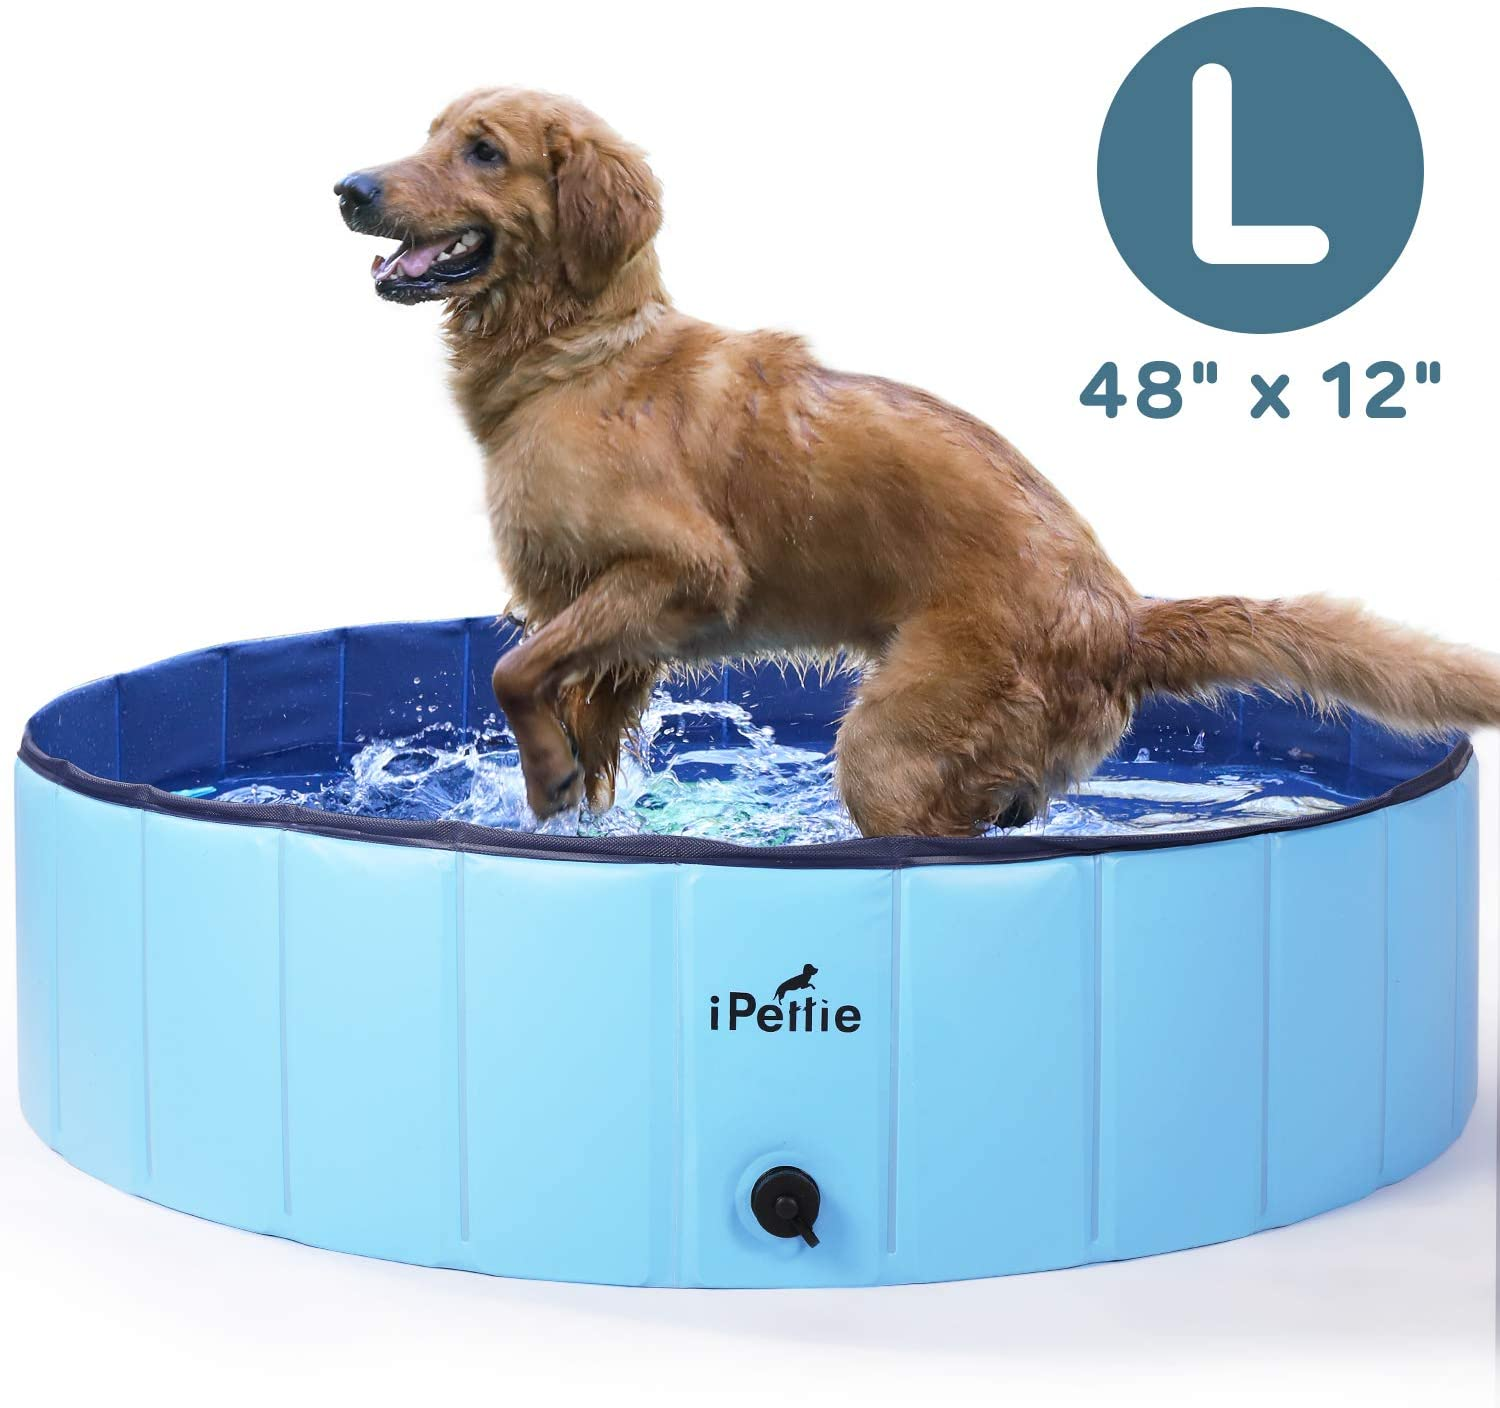 iPettie Foldable Dog Swimming Pool, Portable Collapsible Outdoor Pet Bathing Tub, Kiddie Pool for Dog Cats & Kids